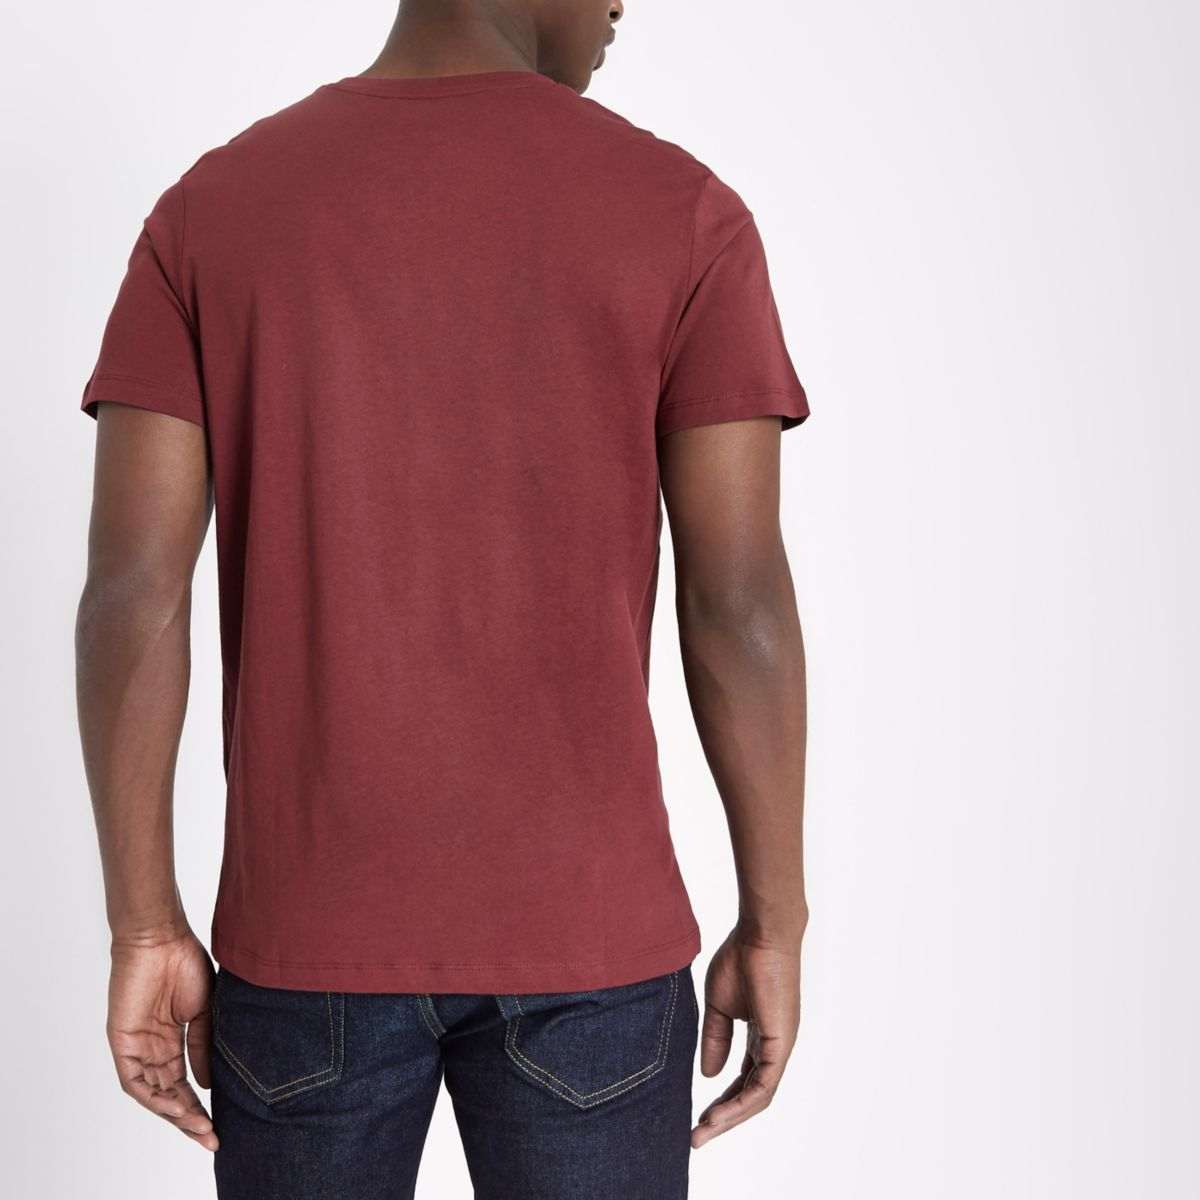 dark short Jones sleeve Jack red amp; shirt T wqFEEZU